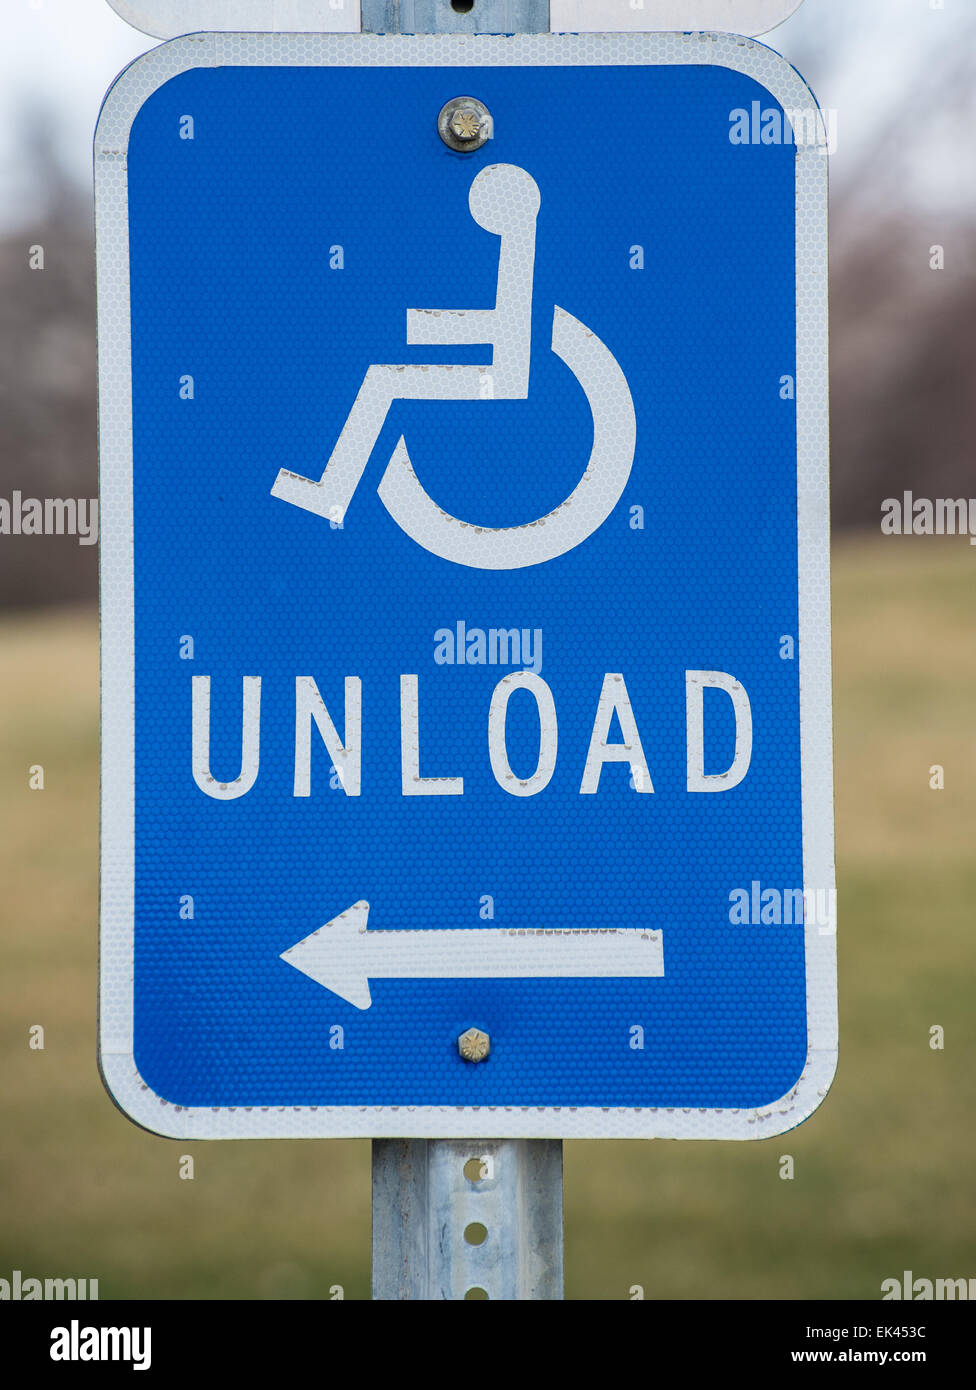 Handicap Unloading Zone near Government Building - Stock Image